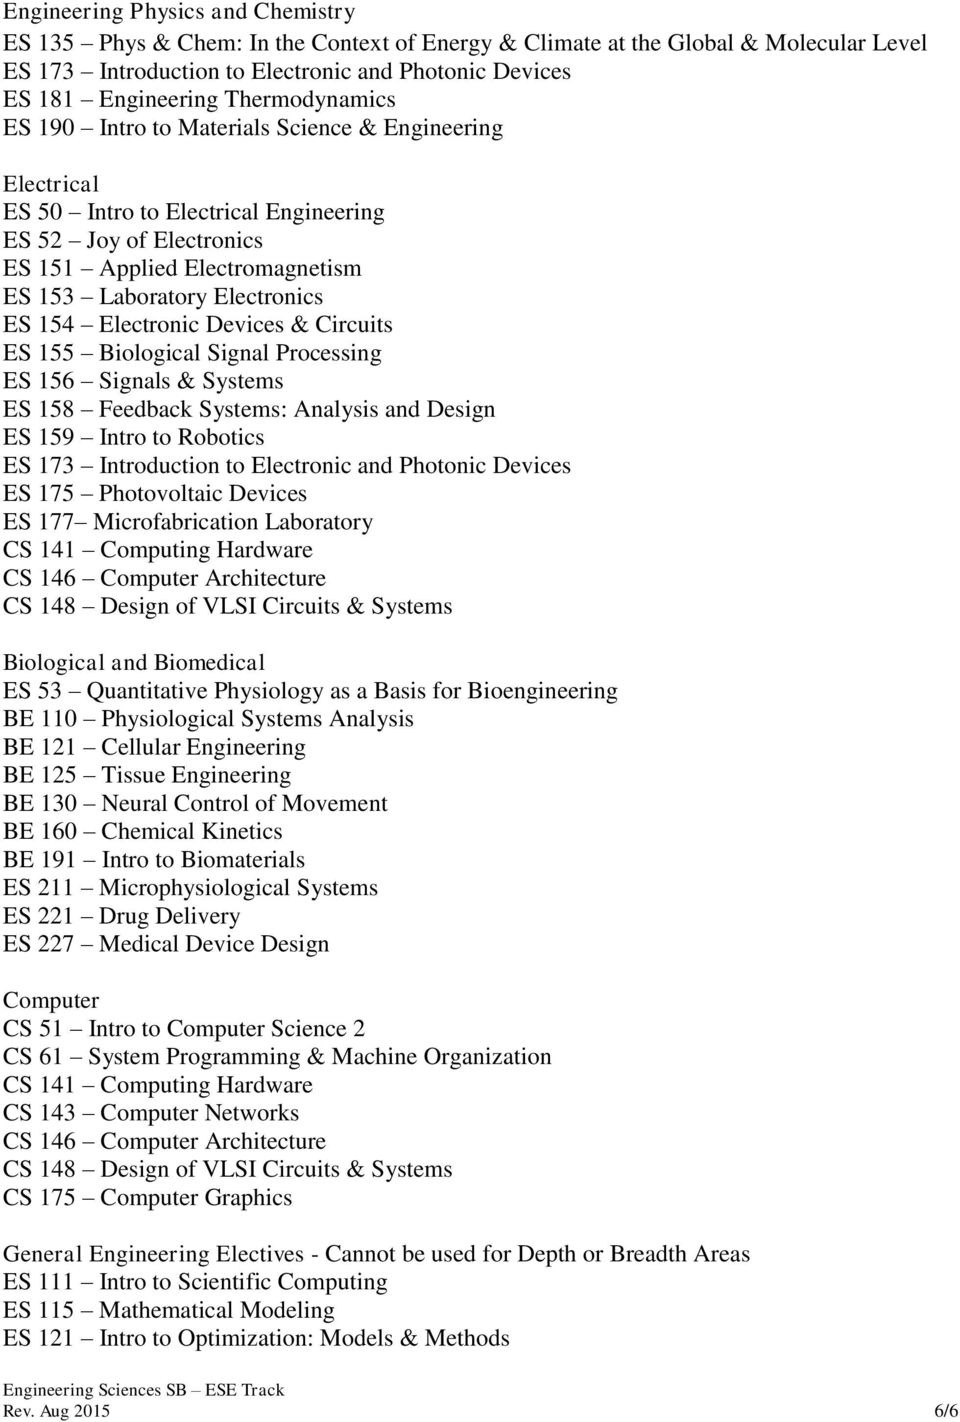 ES 154 Electronic Devices & Circuits ES 155 Biological Signal Processing ES 156 Signals & Systems ES 158 Feedback Systems: Analysis and Design ES 159 Intro to Robotics ES 173 Introduction to